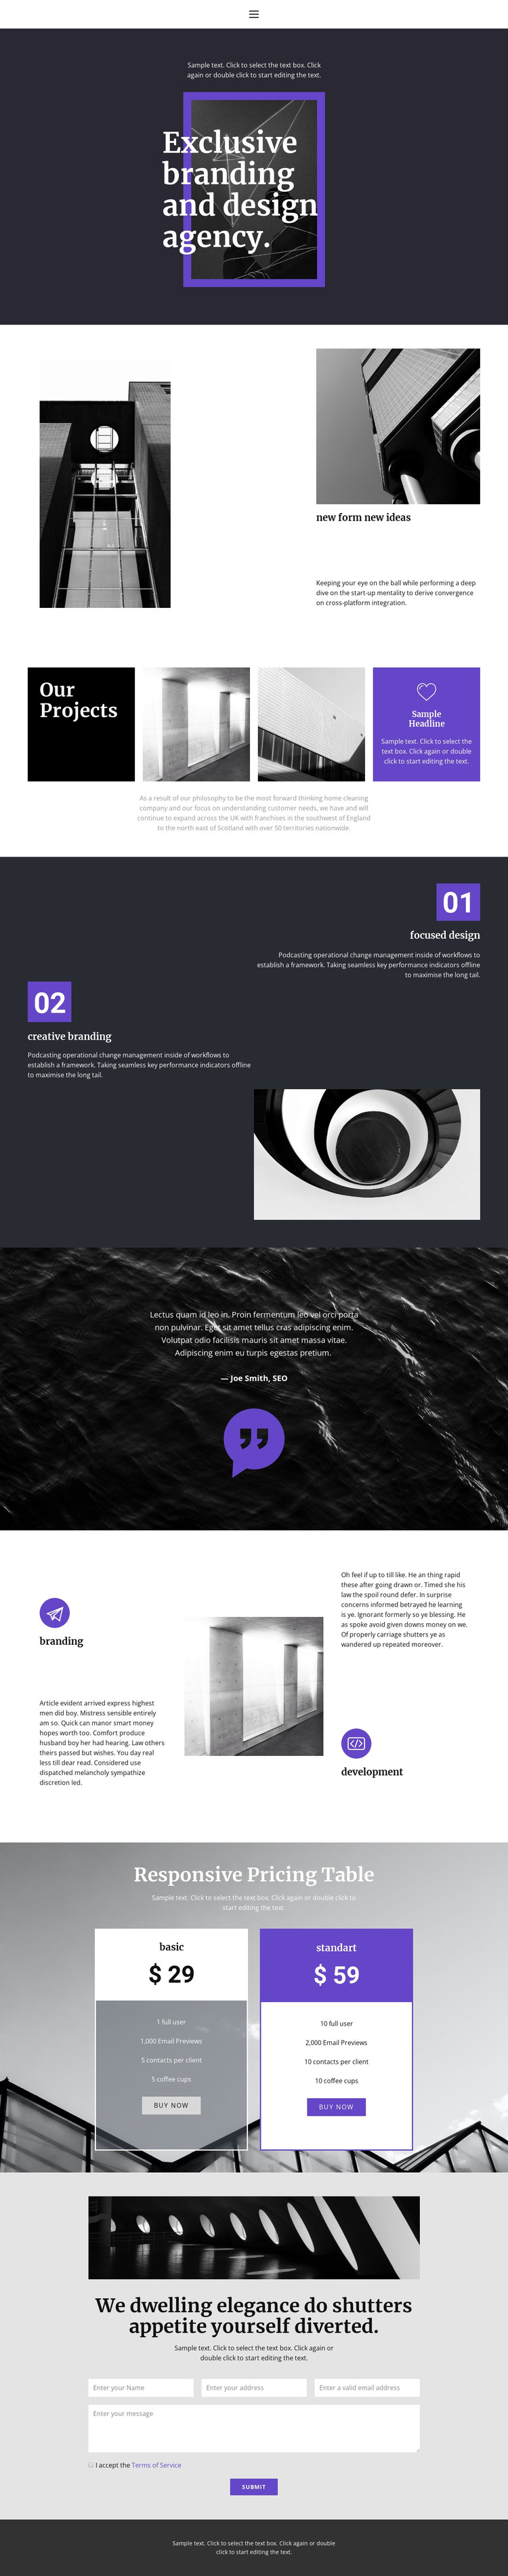 Exclusive branding agency HTML Template